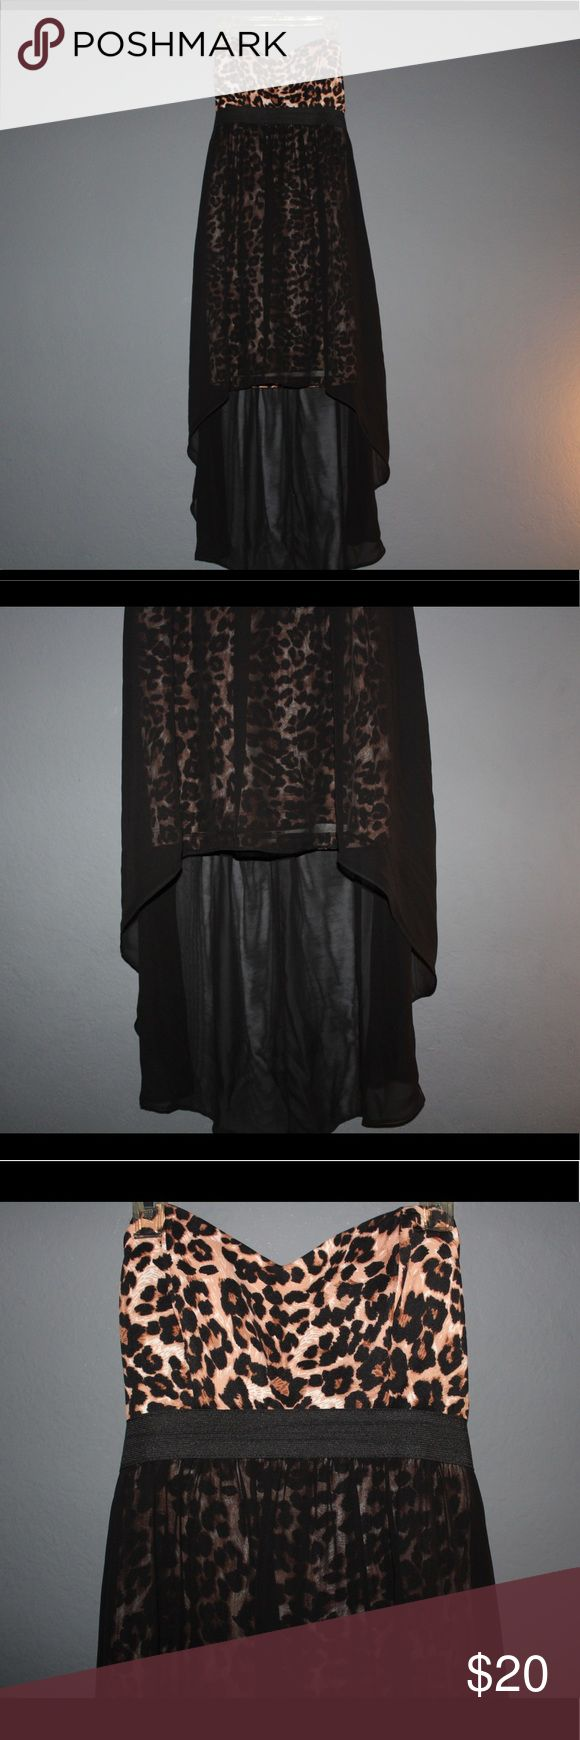 High low cheetah dress High low dress with cheetah mini dress under a sheer black layer. Sheer black layer is in good condition no tears Dresses High Low